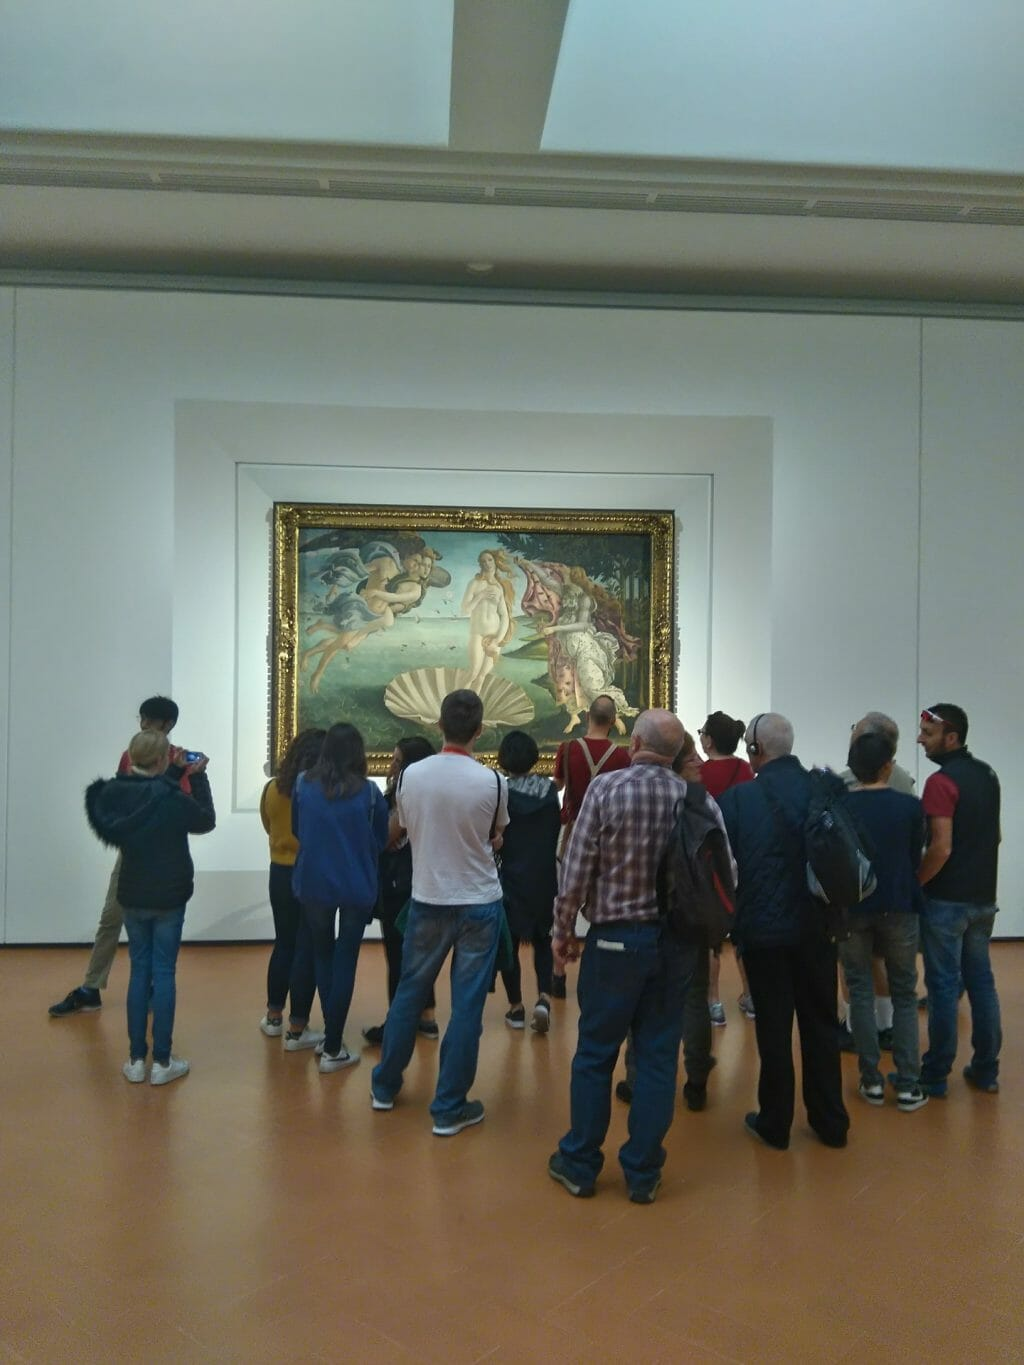 People gathering around the Birth of Venus painting in the Uffizi Gallery in Florence